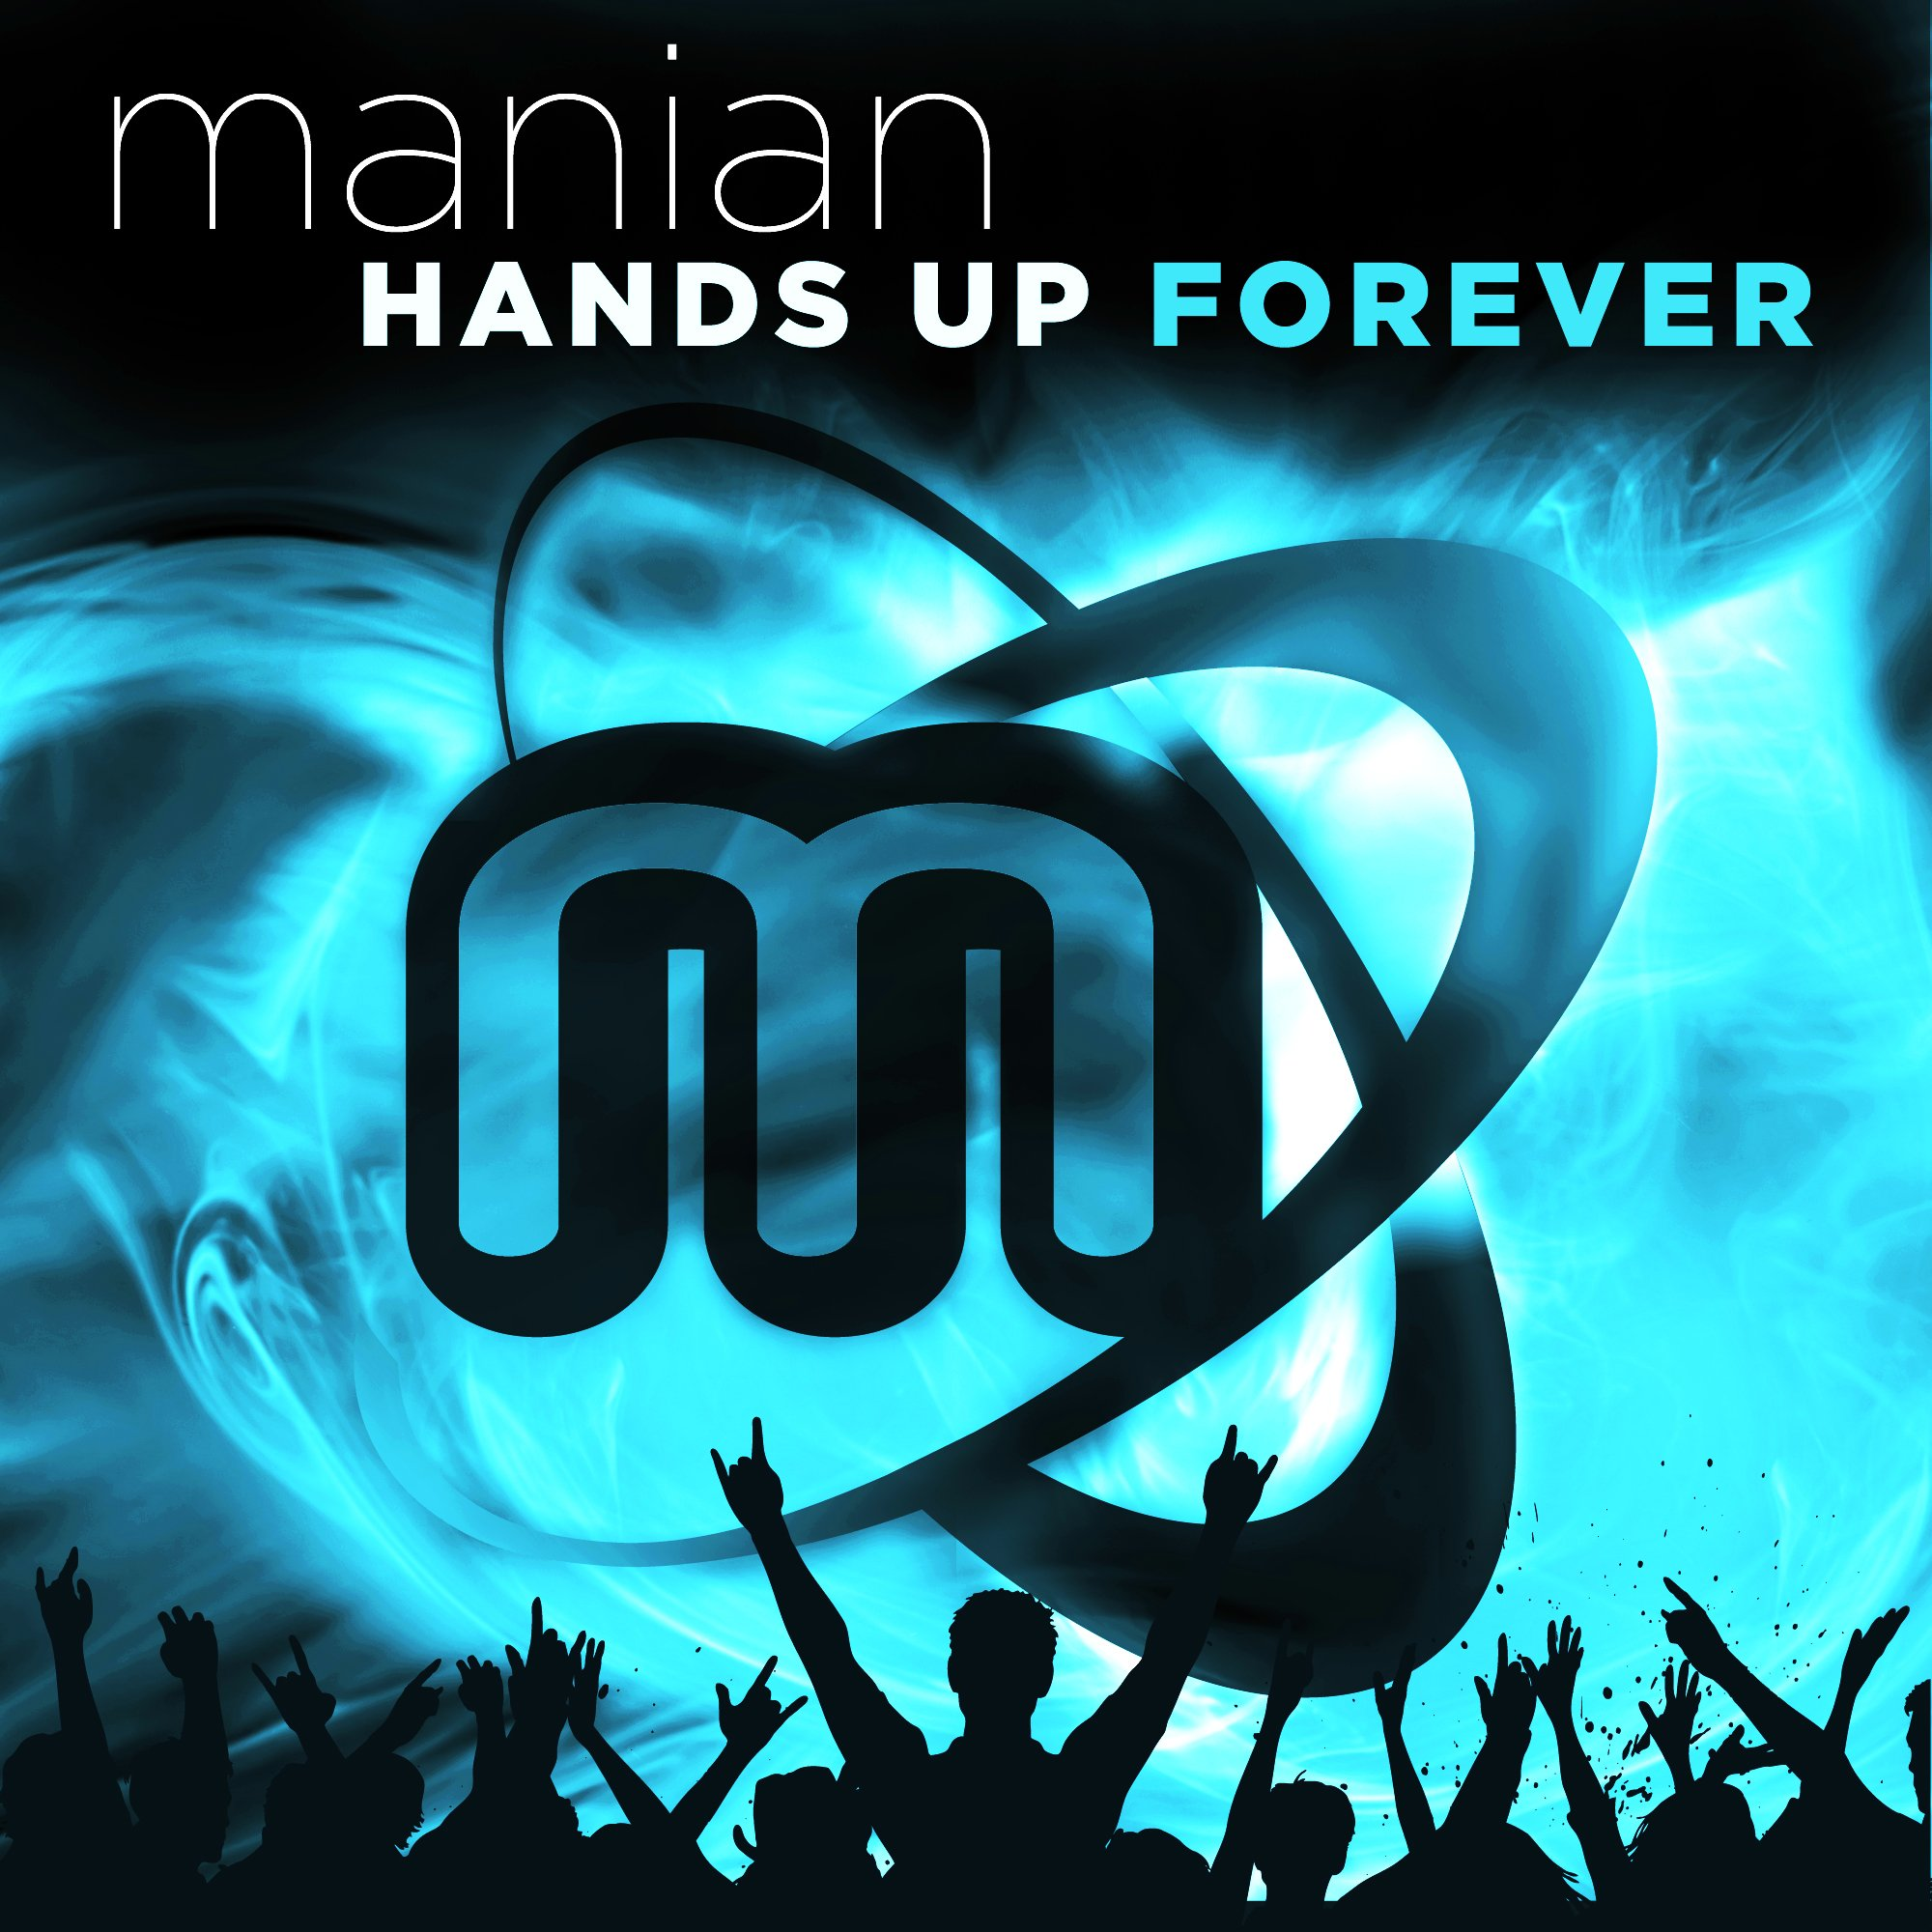 Manian-Hands Up Forever (Limited 4 CD Edition)